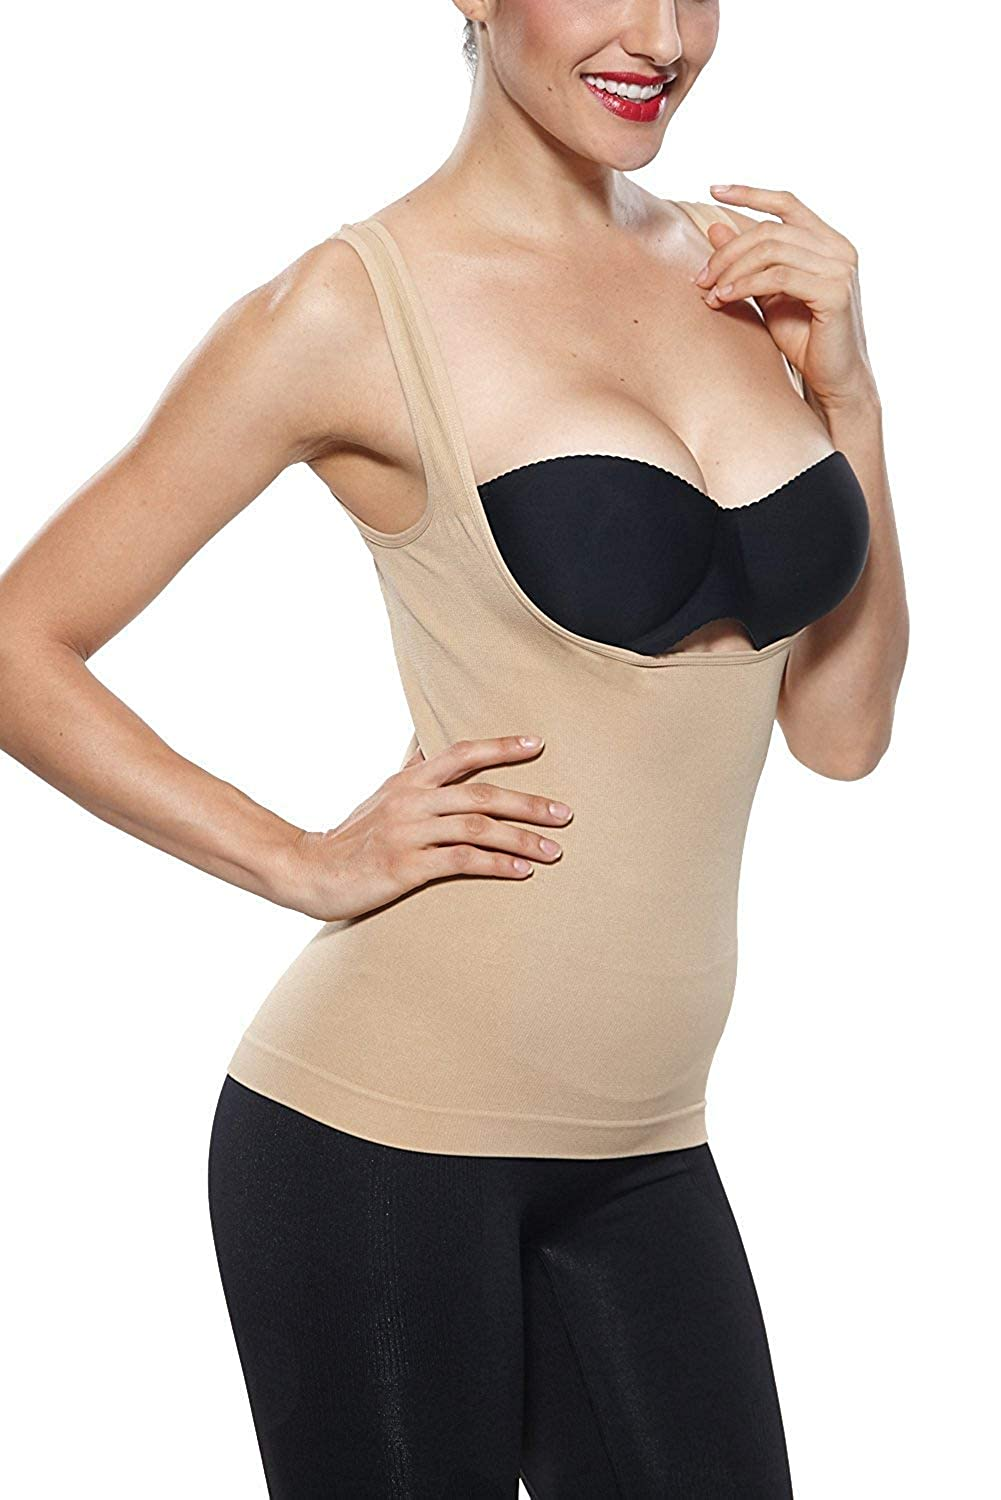 Belugue Womens Shapewear Torsette Control Tank Tops Body Shaper Camis